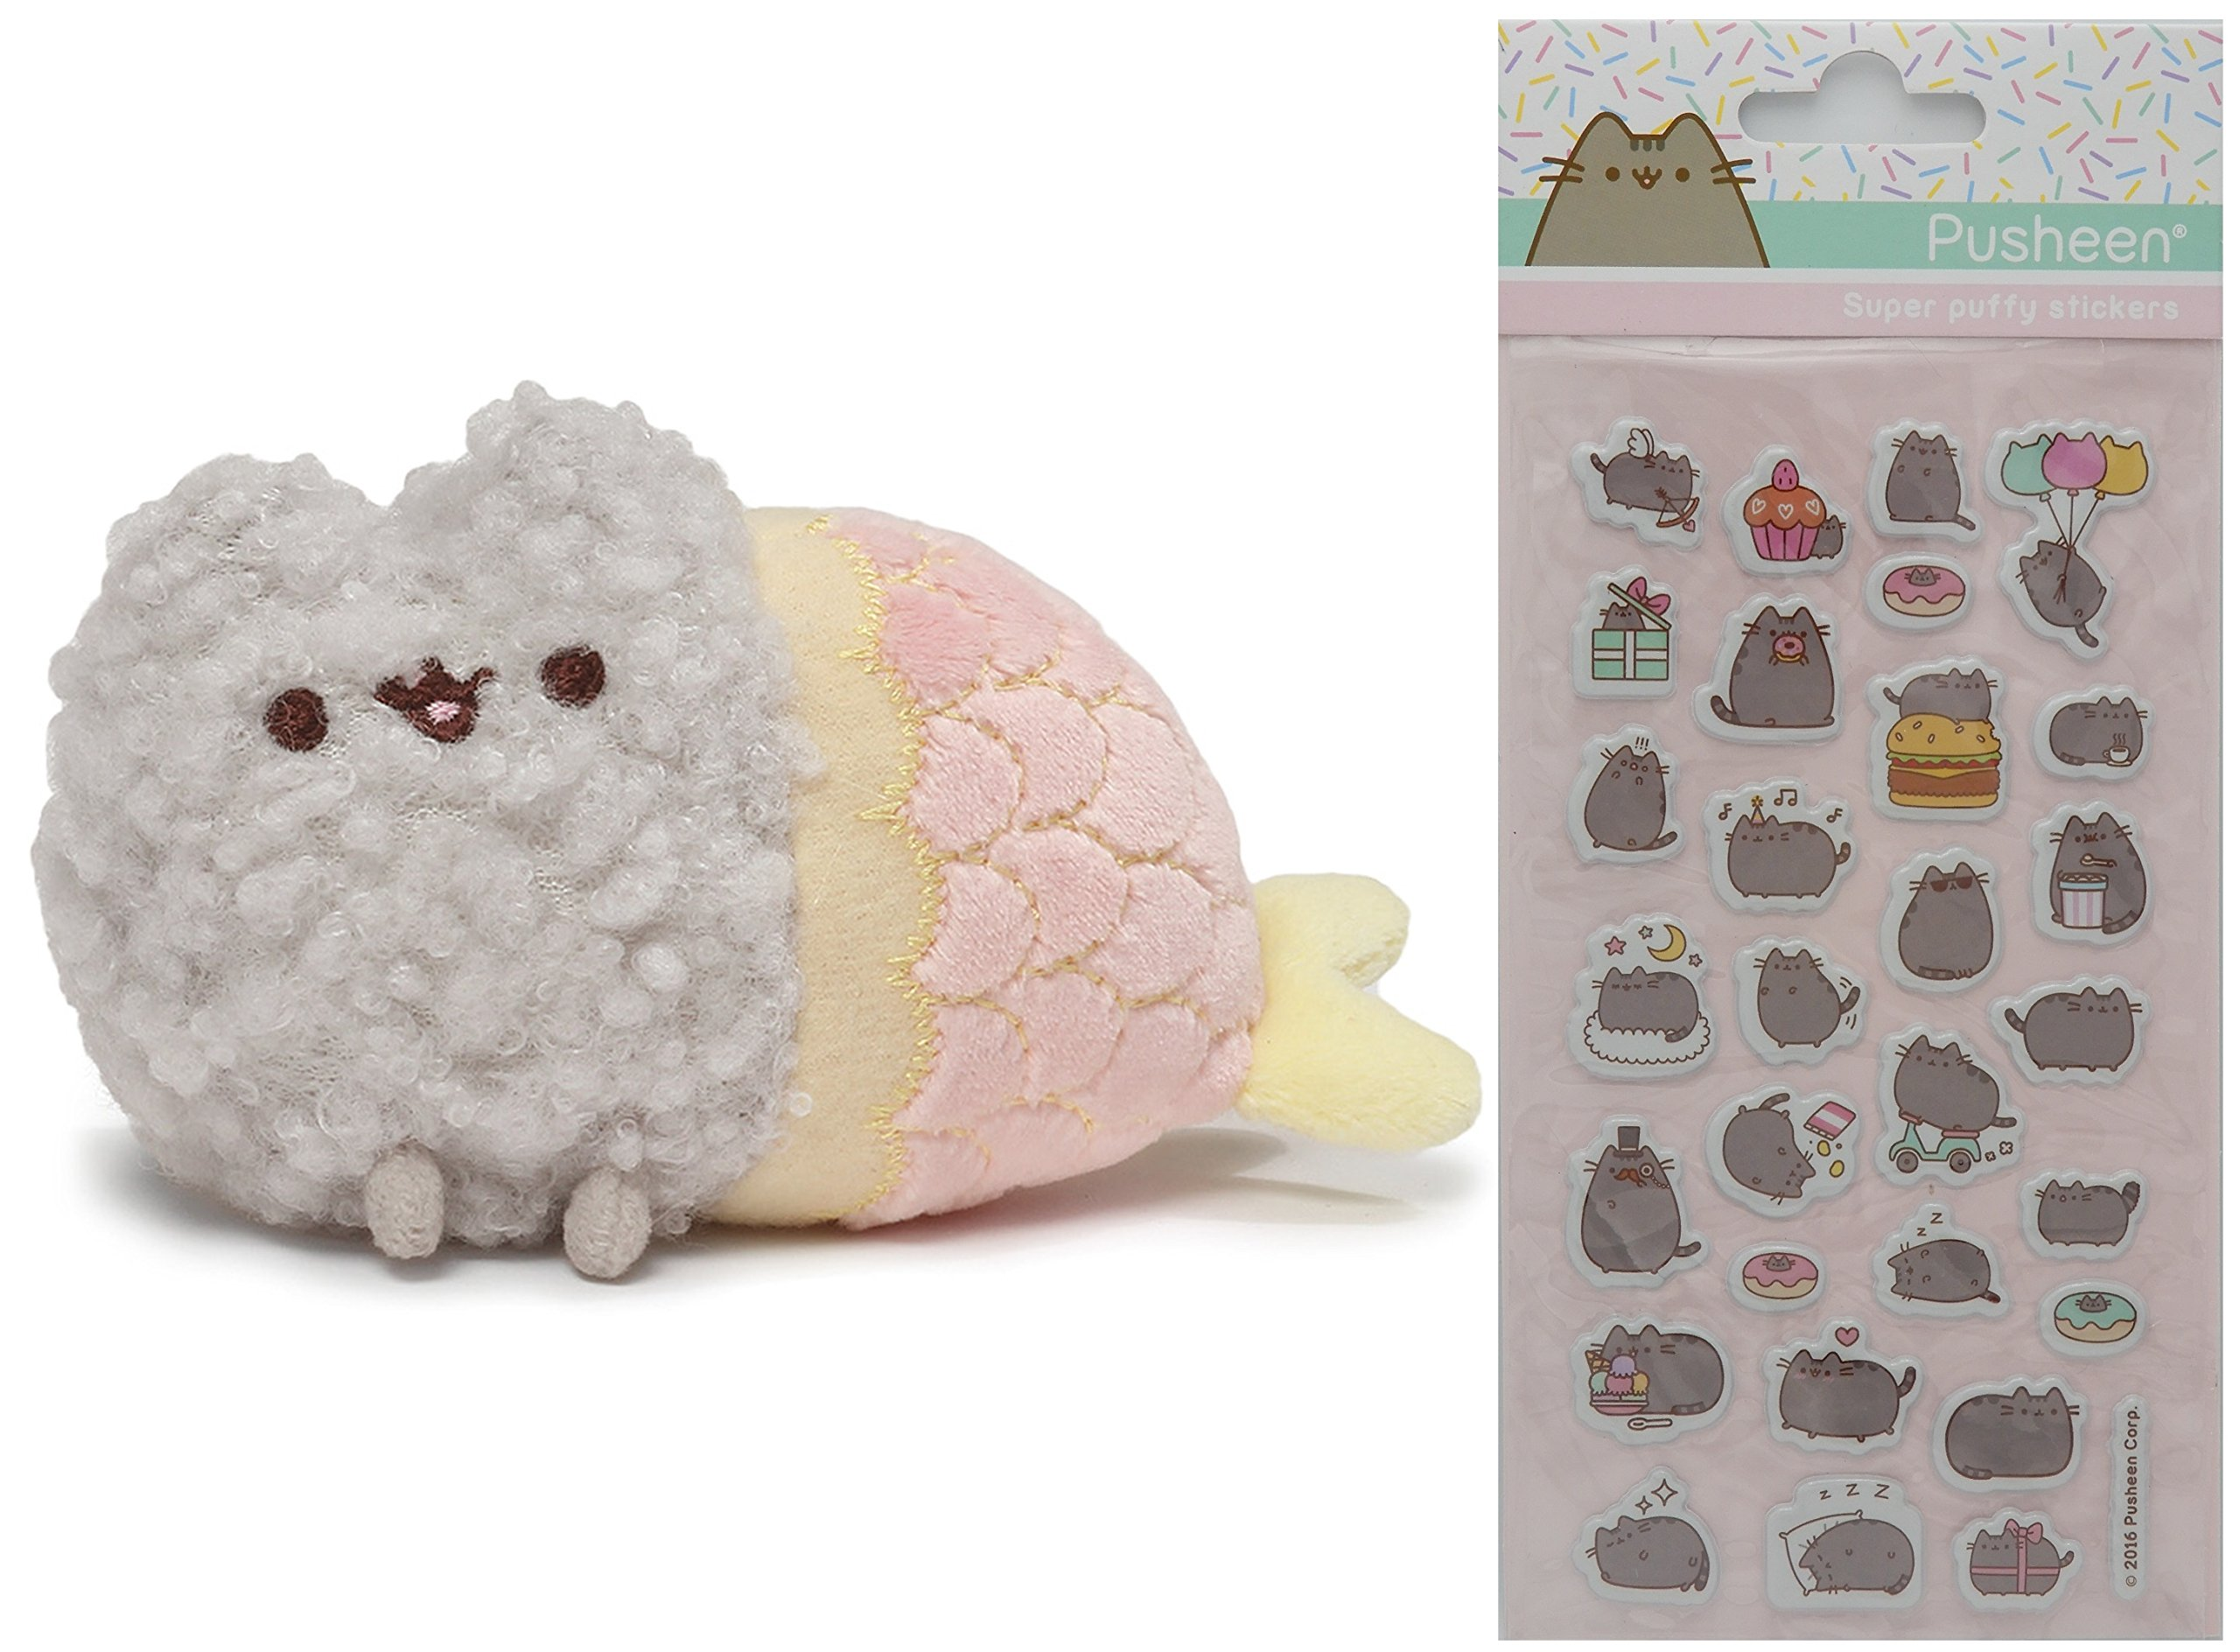 Gund Pusheen Mermaid Stormy 4.75'' Plush with Pusheen Super Puffy Stickers by Pusheen